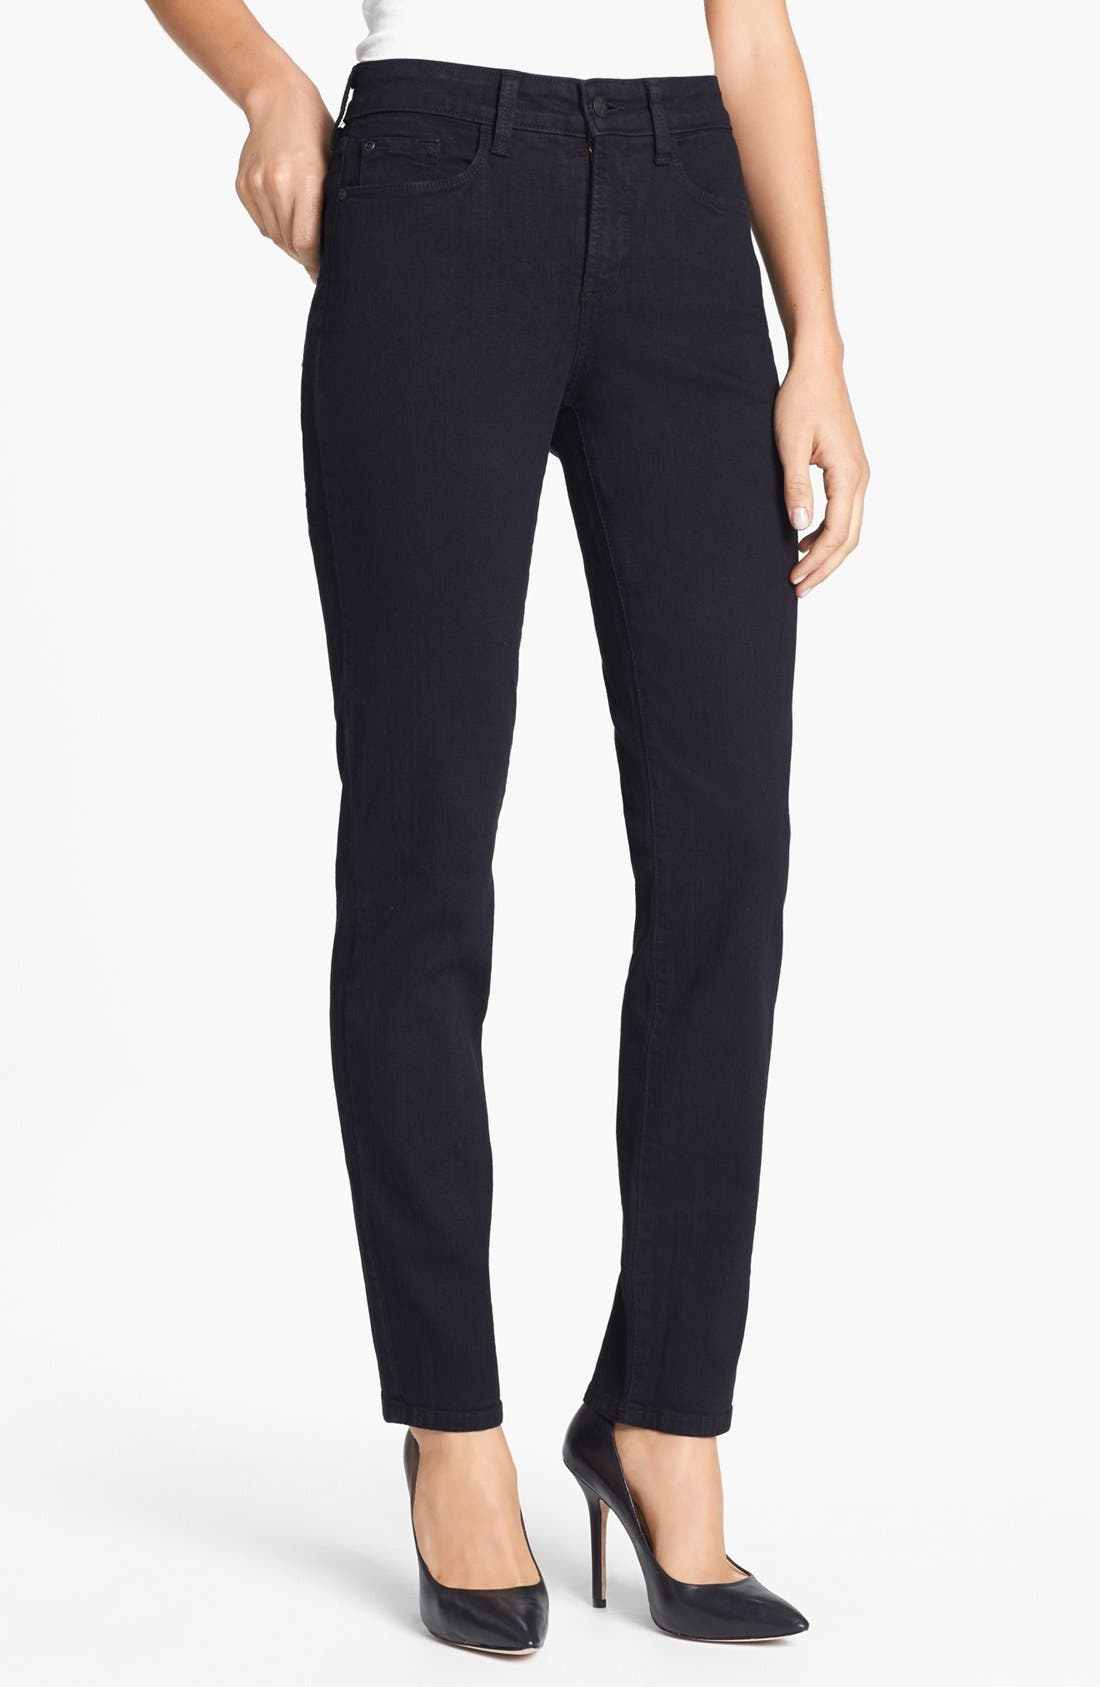 Alternate Image 1 Selected - NYDJ 'Alina' Stretch Skinny Jeans (Black)